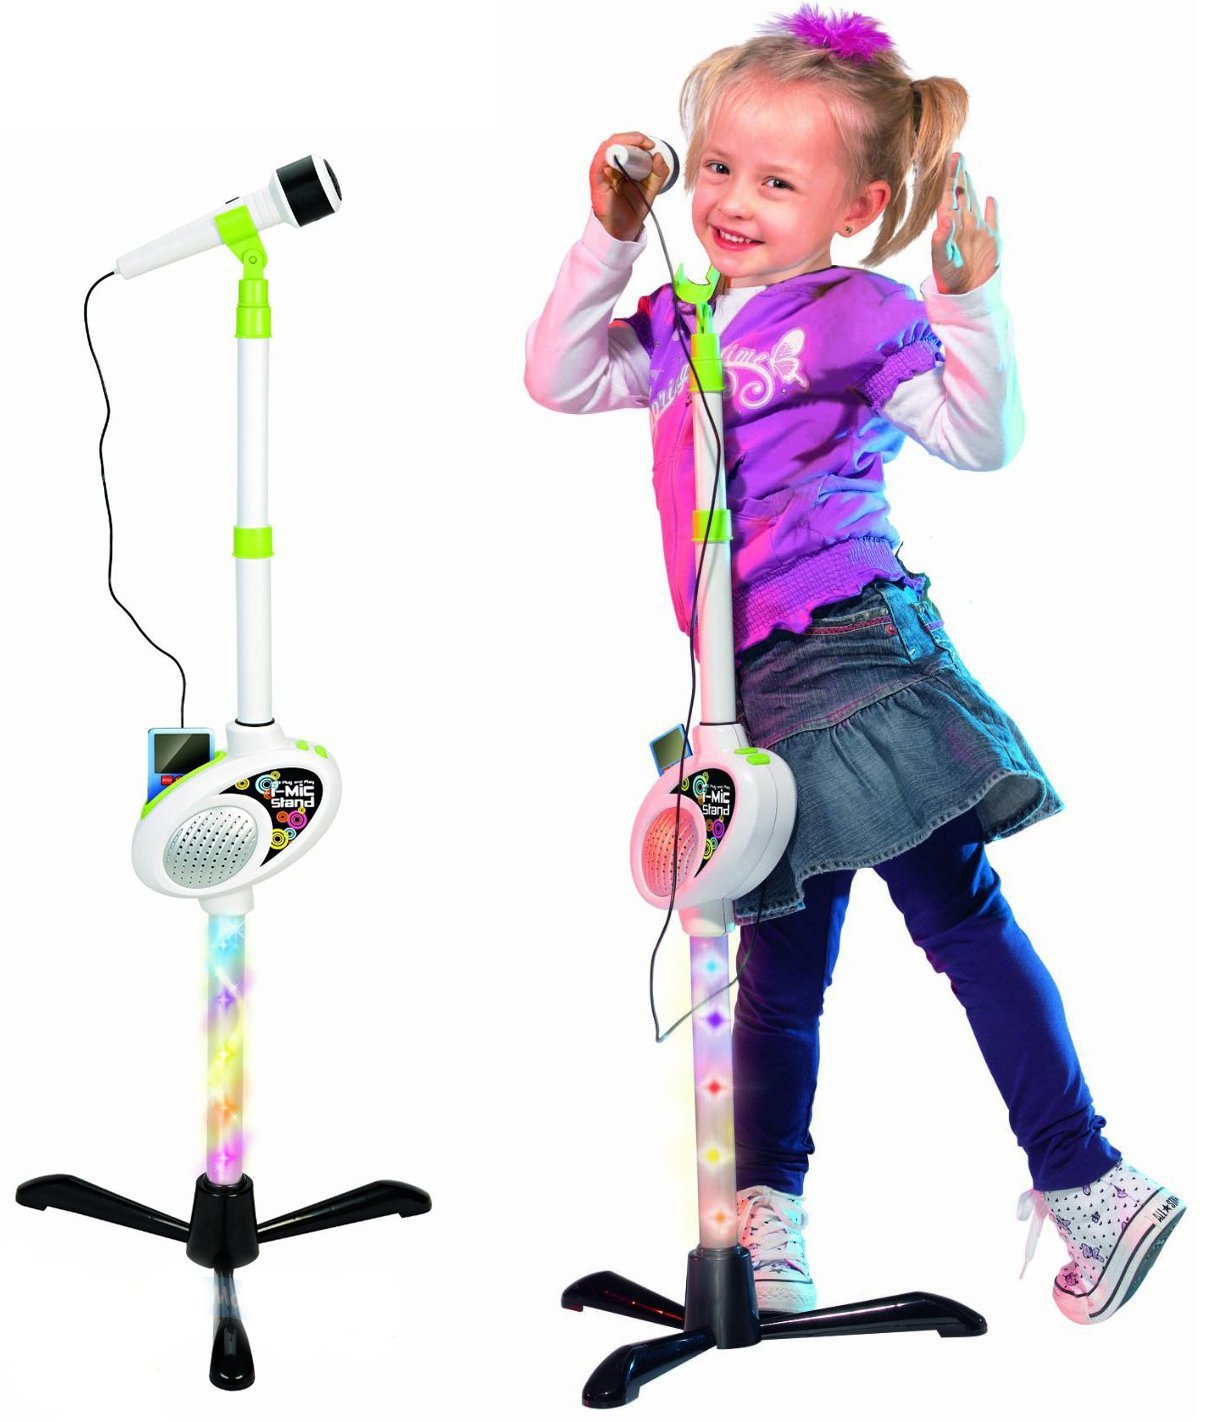 Childrens I-Mic MP3 Plug & Play Toy Microphone Light Up Stand Demo Music Songs MTS